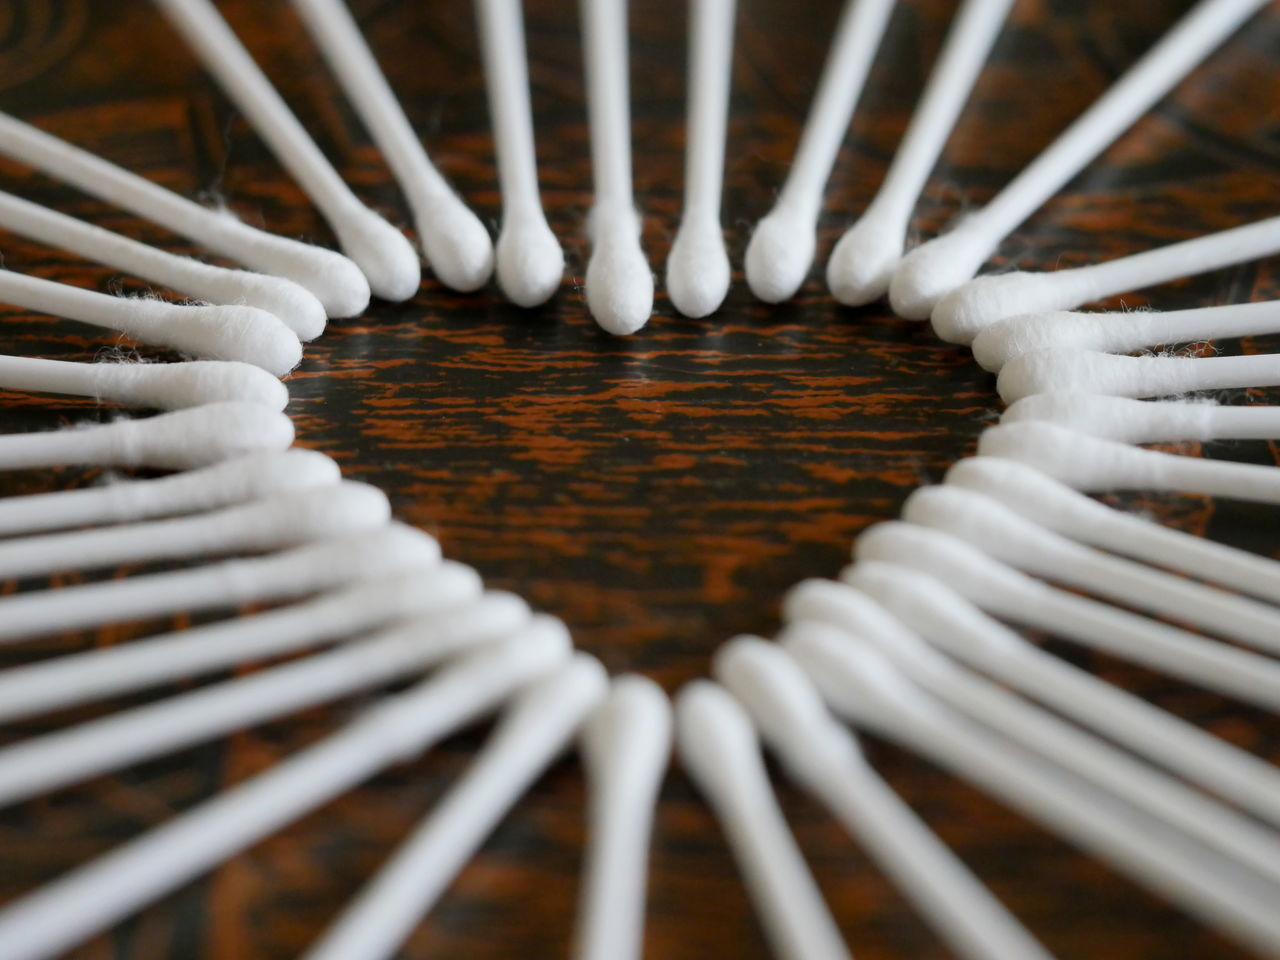 Abstract Cotton Swab Creative Creative World Heart Ideas Indoors  Macro No People Pattern Perspective Q-tips Selective Focus Taking Photos Beautifully Organized Close-up Close Up From My Point Of View Fragility Backgrounds